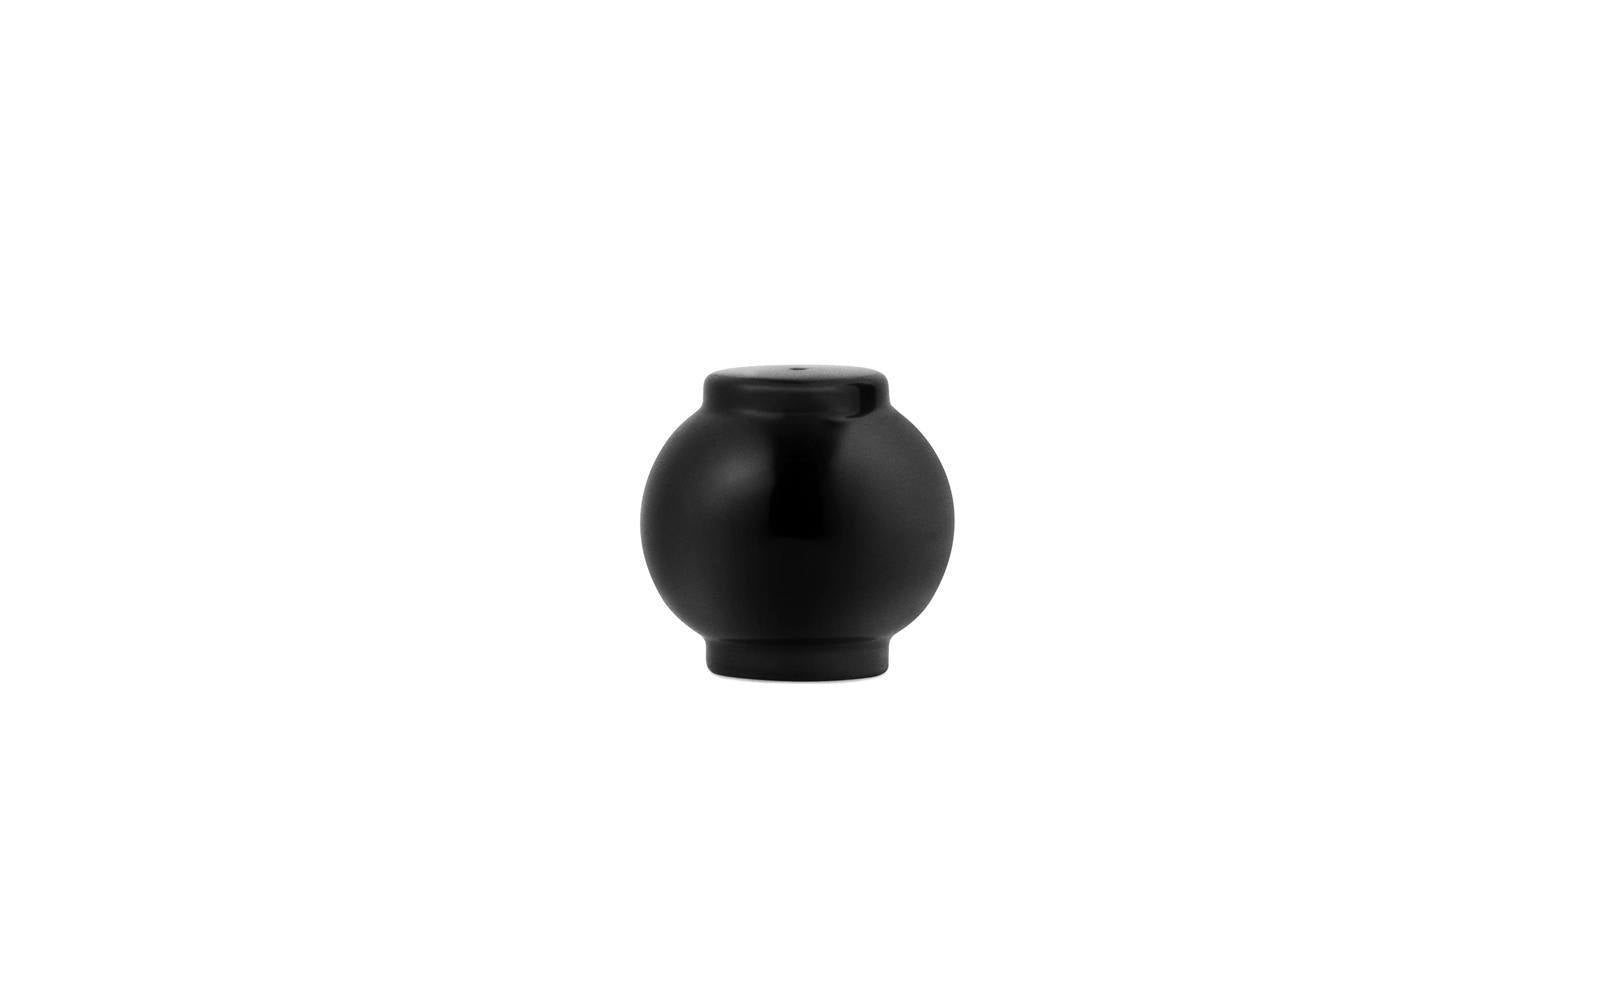 normann copenhagen salt og pepperbosse